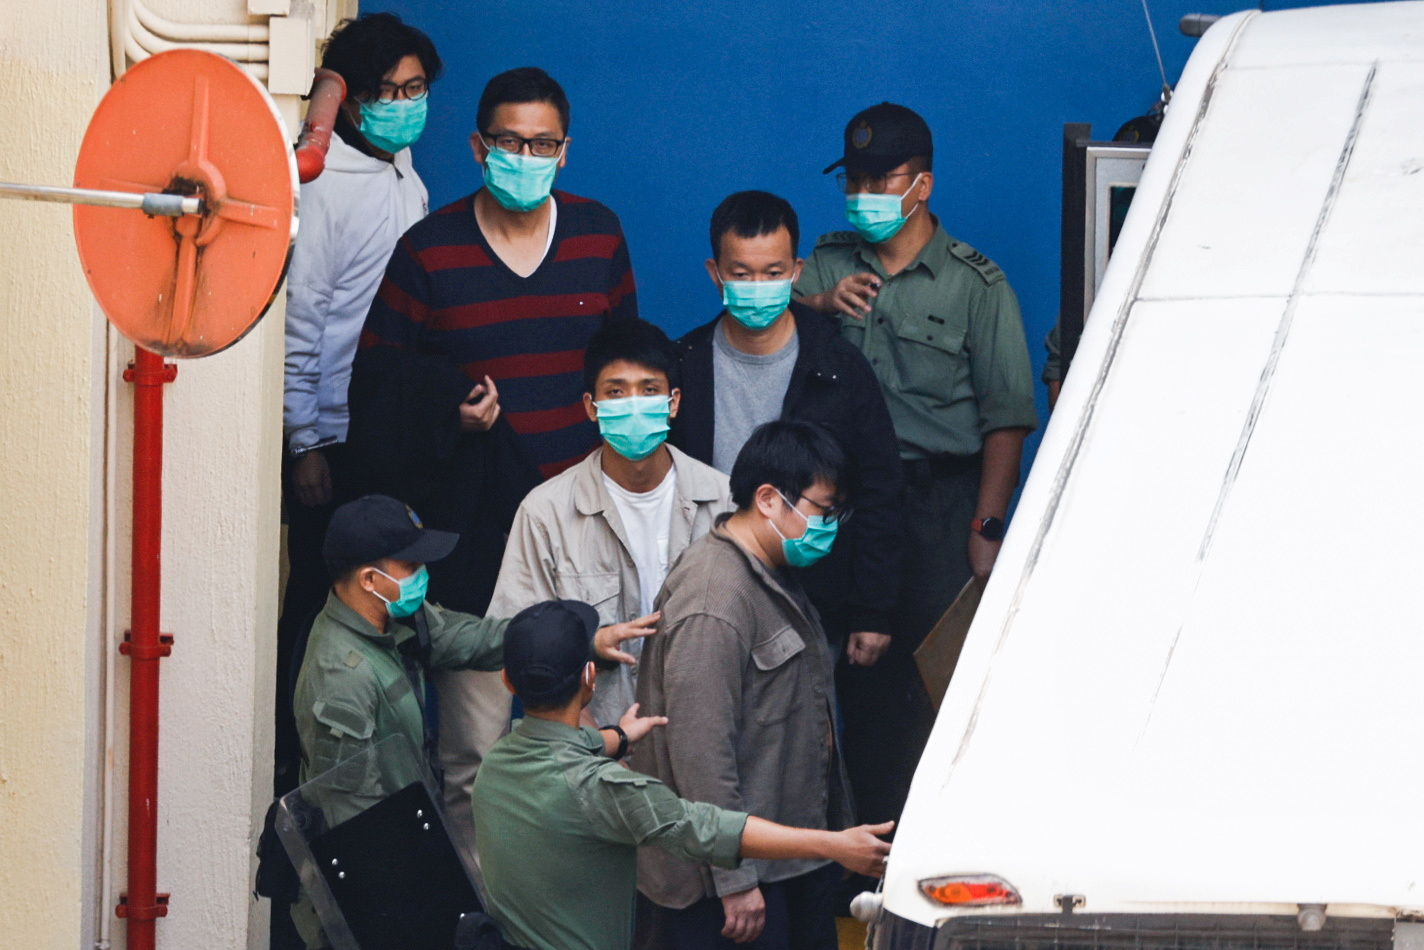 Pro-democracy activists Sam Cheung, Lam Cheuk-ting, Raymond Chan Chi-chuen and Owen Chow walk to a prison van to head to court, over national security law charges, in Hong Kong, China March 2, 2021. REUTERS/Tyrone Siu